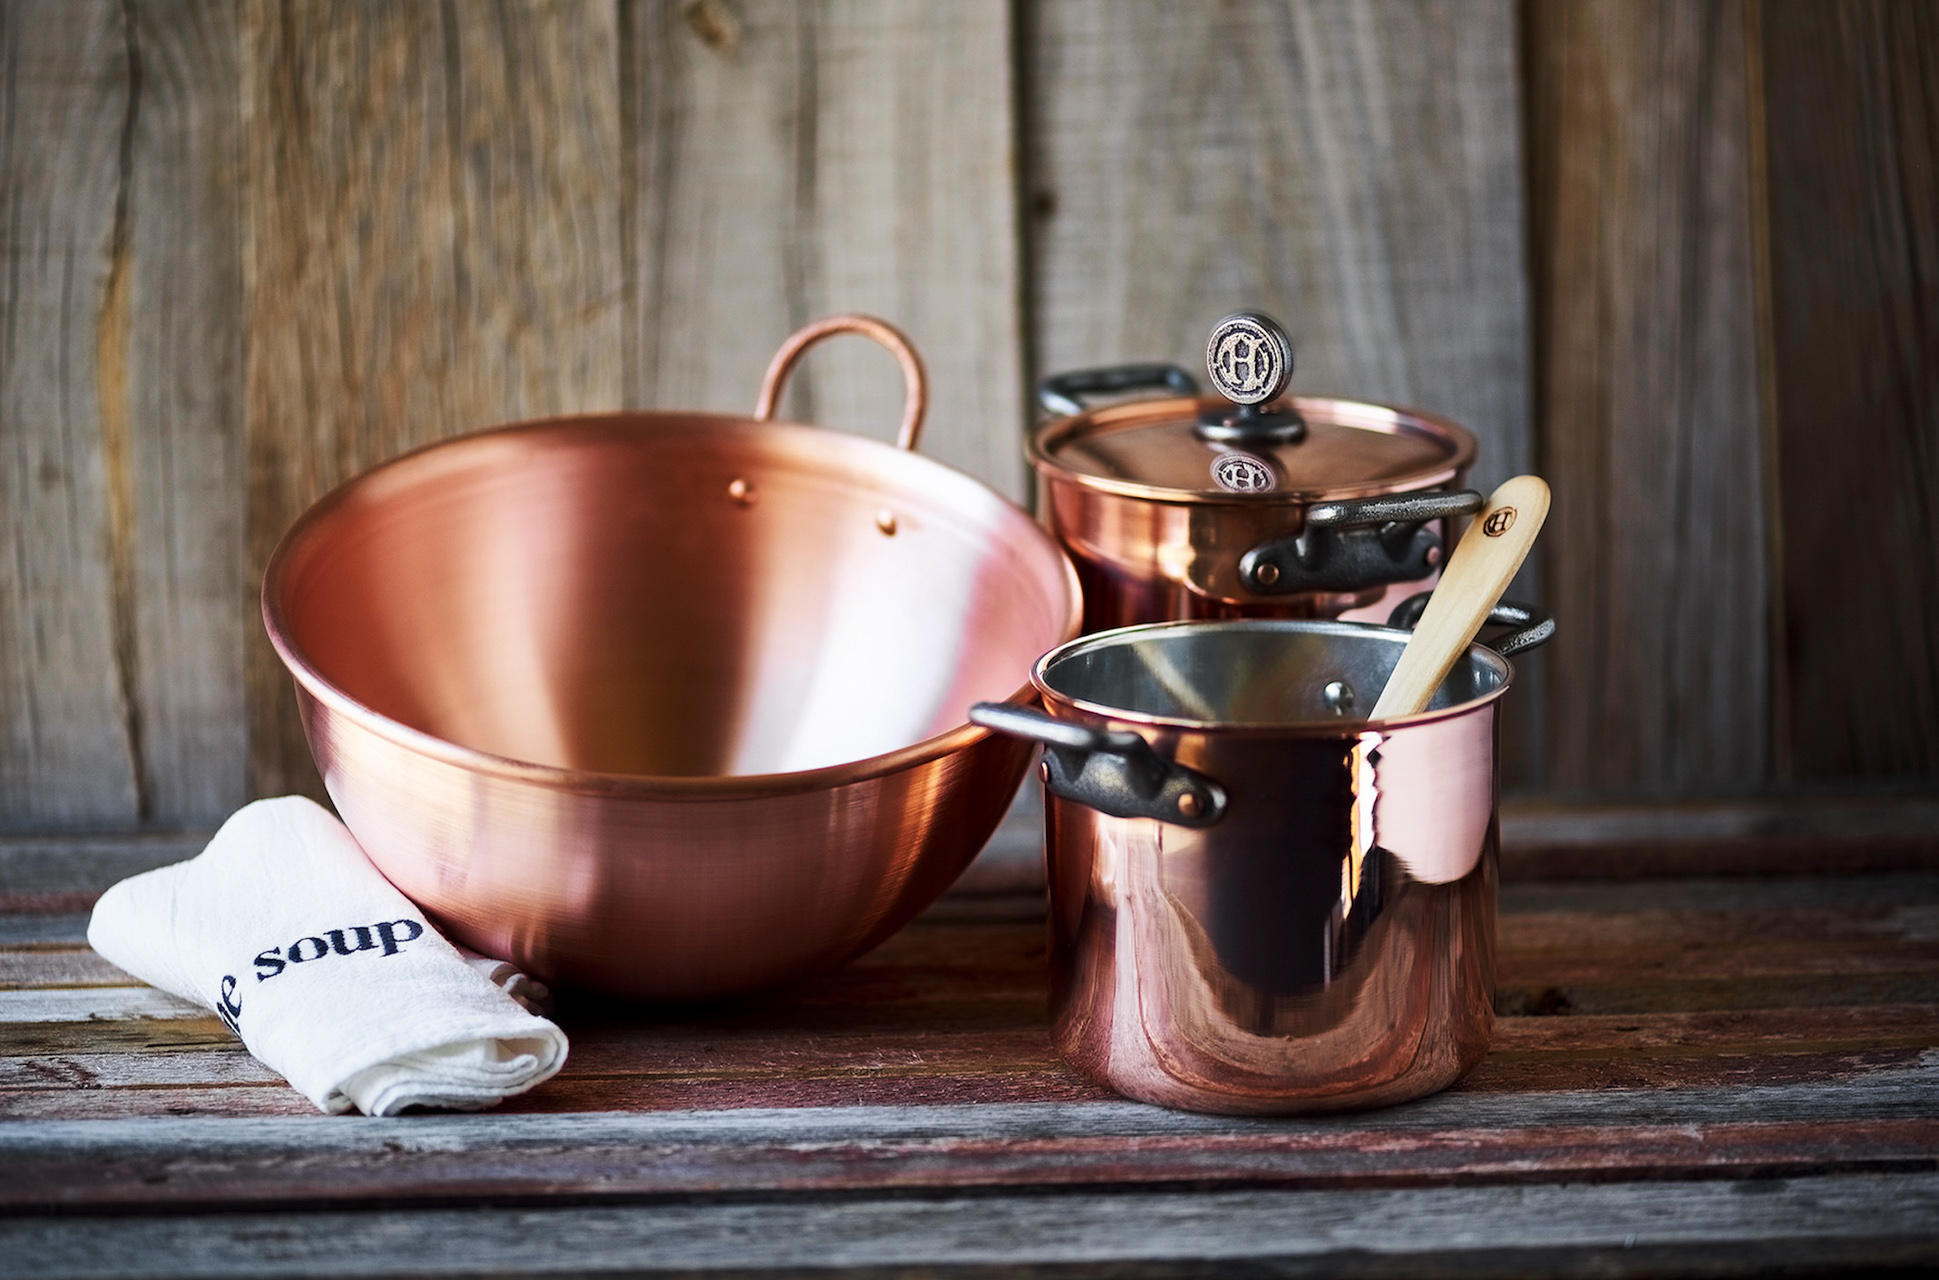 house copper cookware by sara dahmen